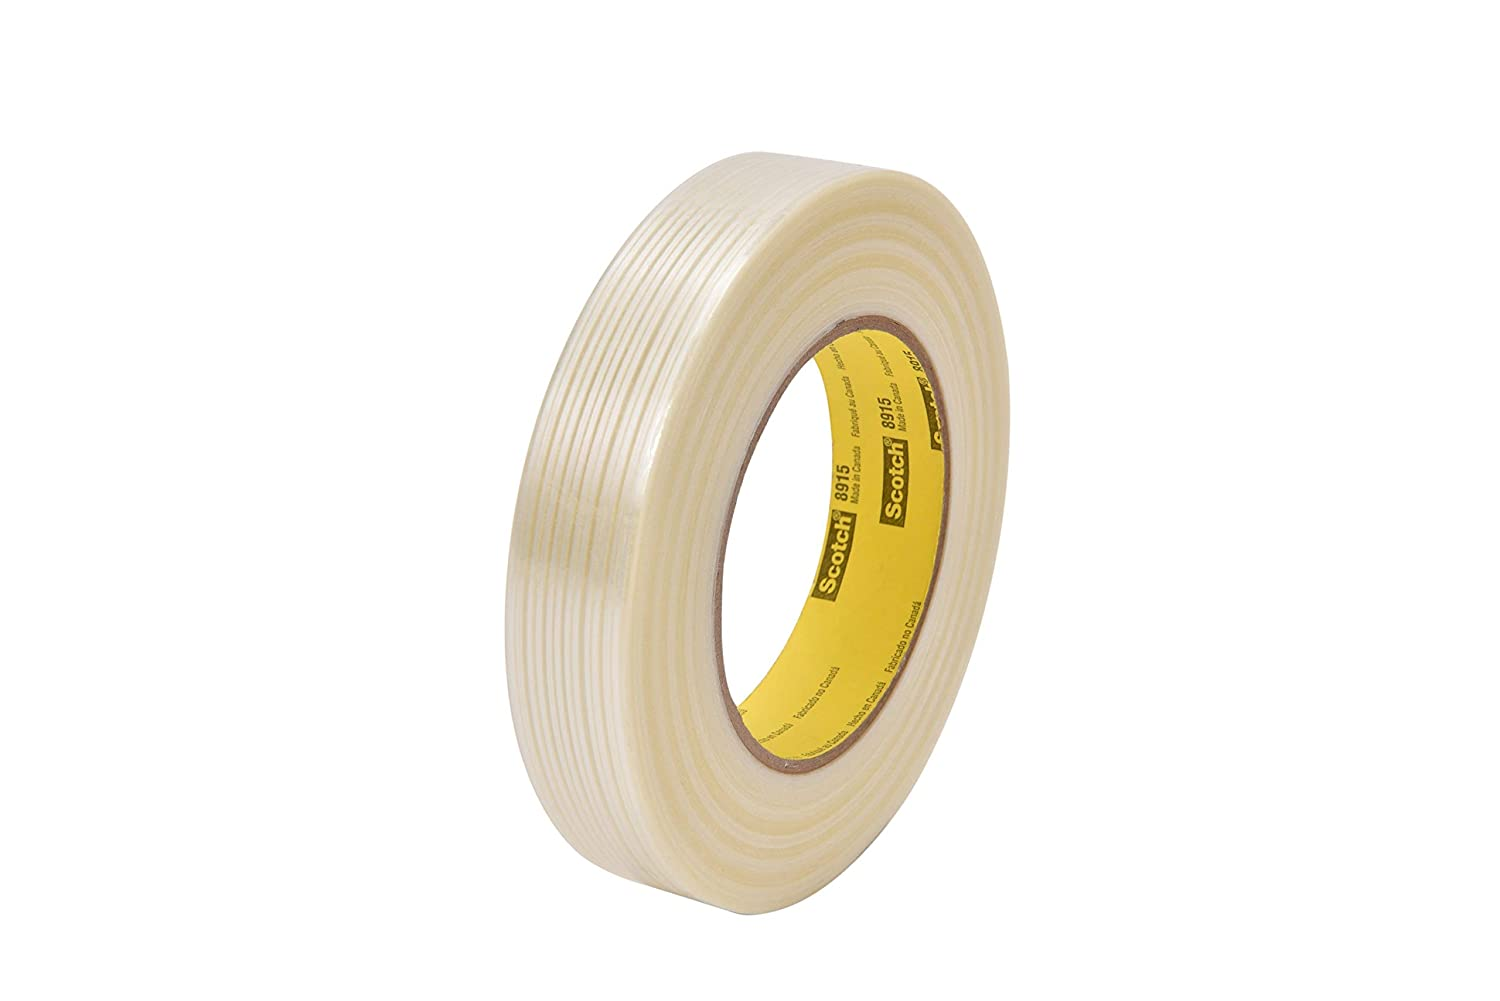 Filament Tape 8915 Clean Removal, 12 mm x 55 m